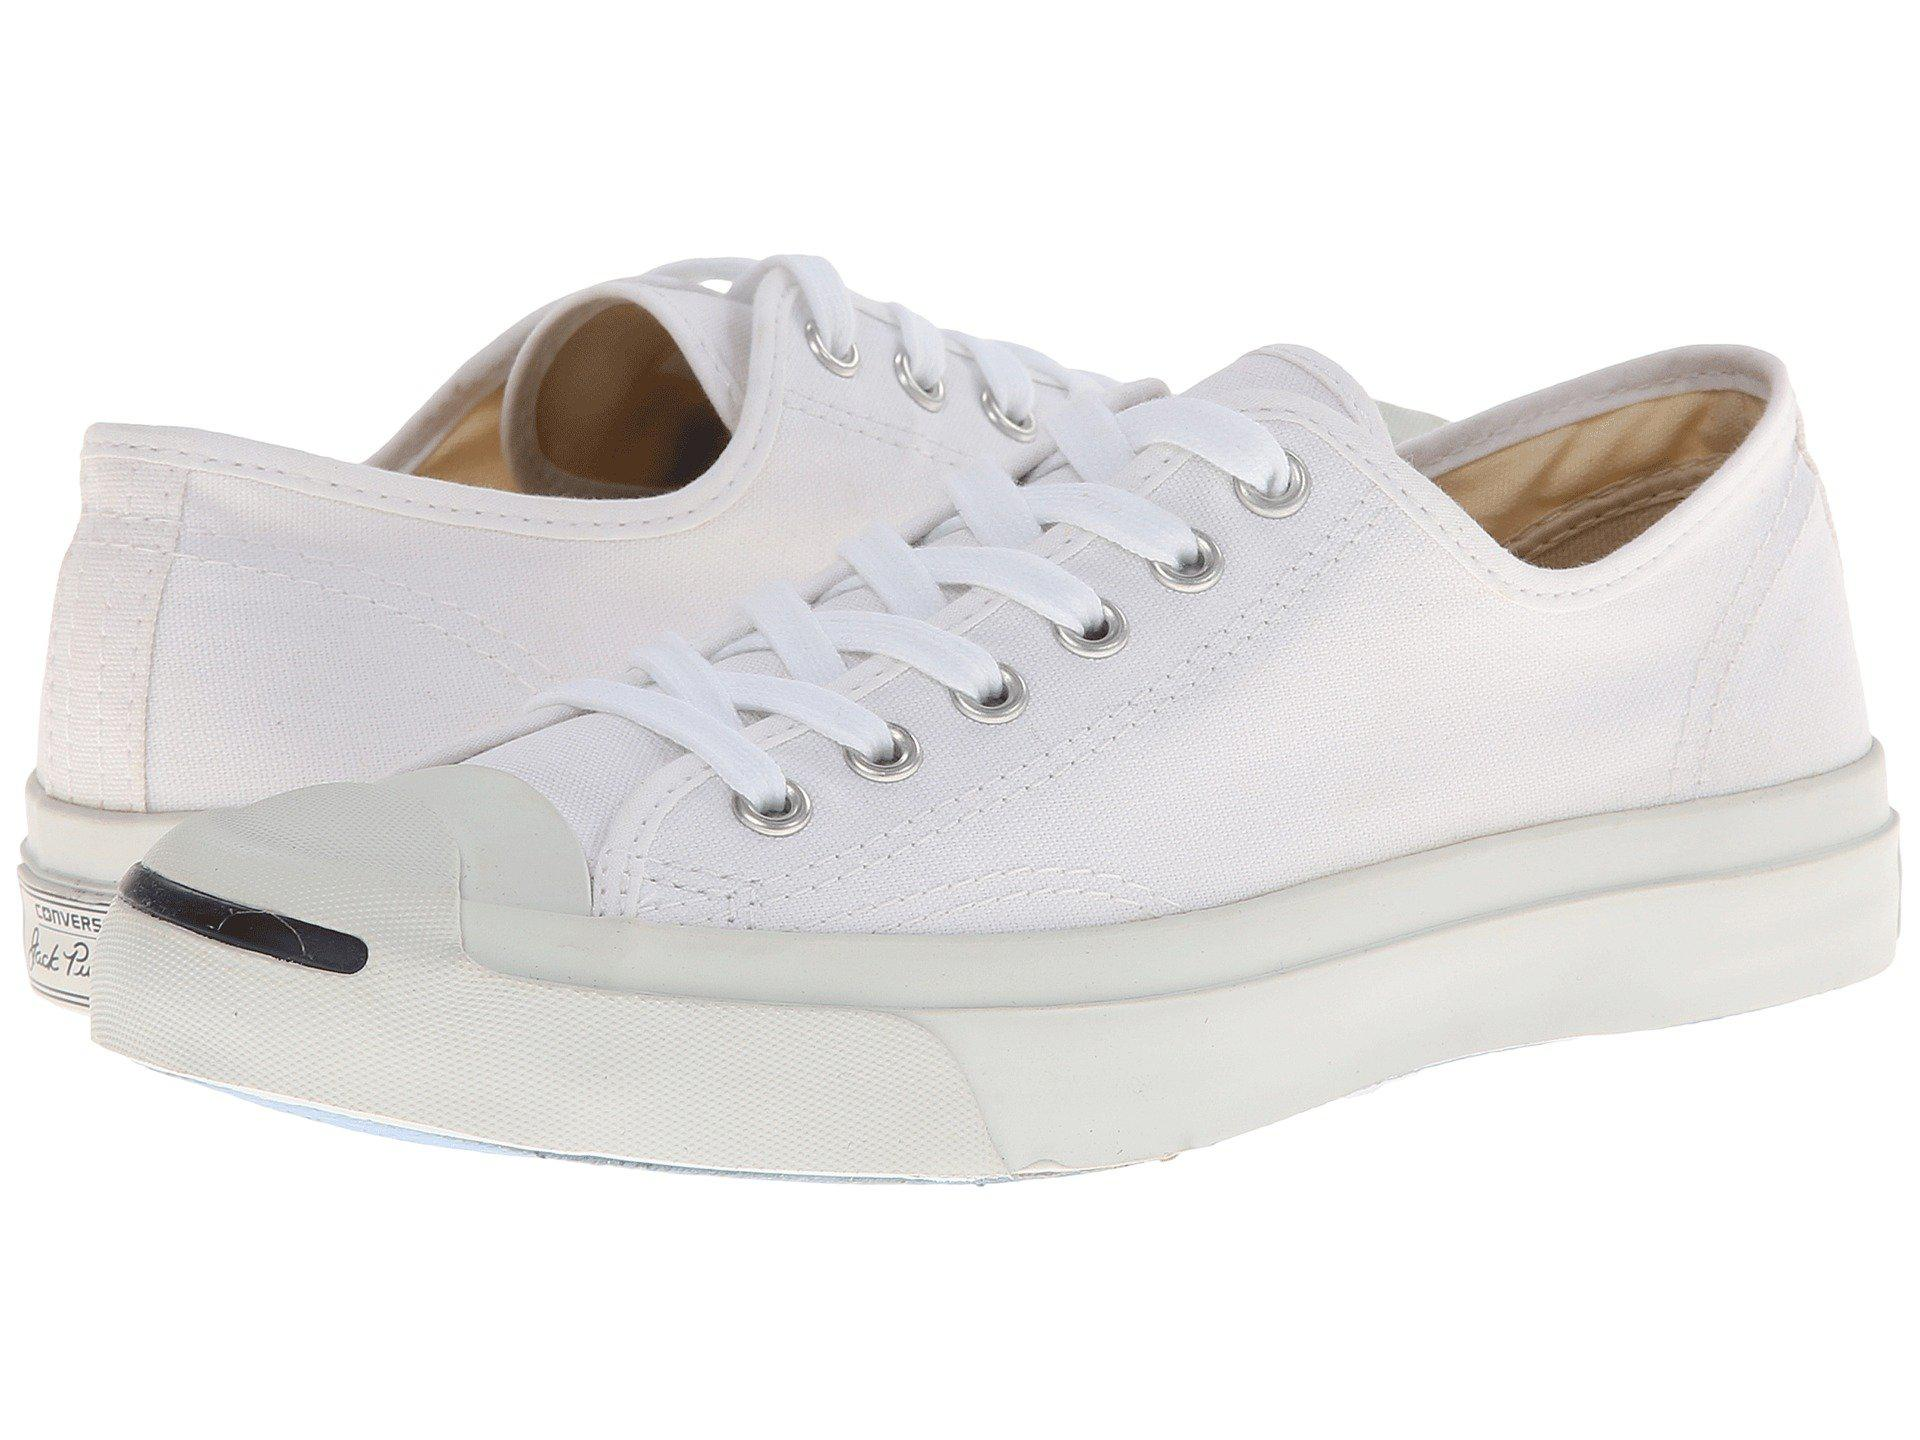 Lyst - Converse Jack Purcell(r) Cp Canvas Low Top (white white ... bc9e9761a